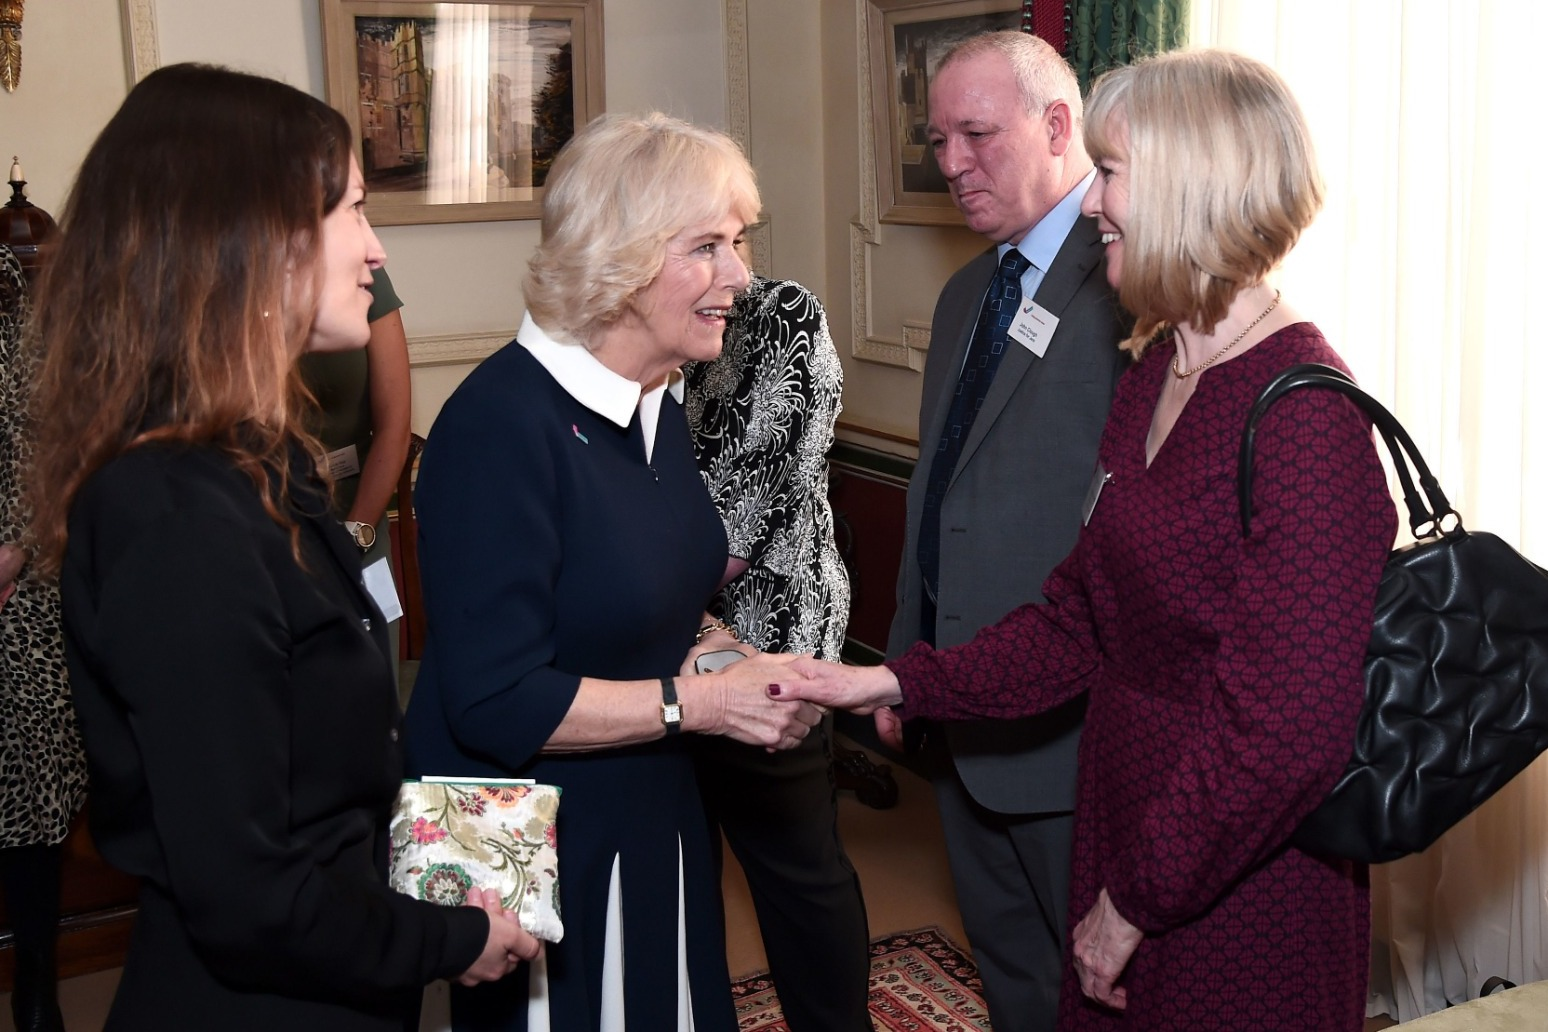 Camilla stresses importance of talking about domestic abuse